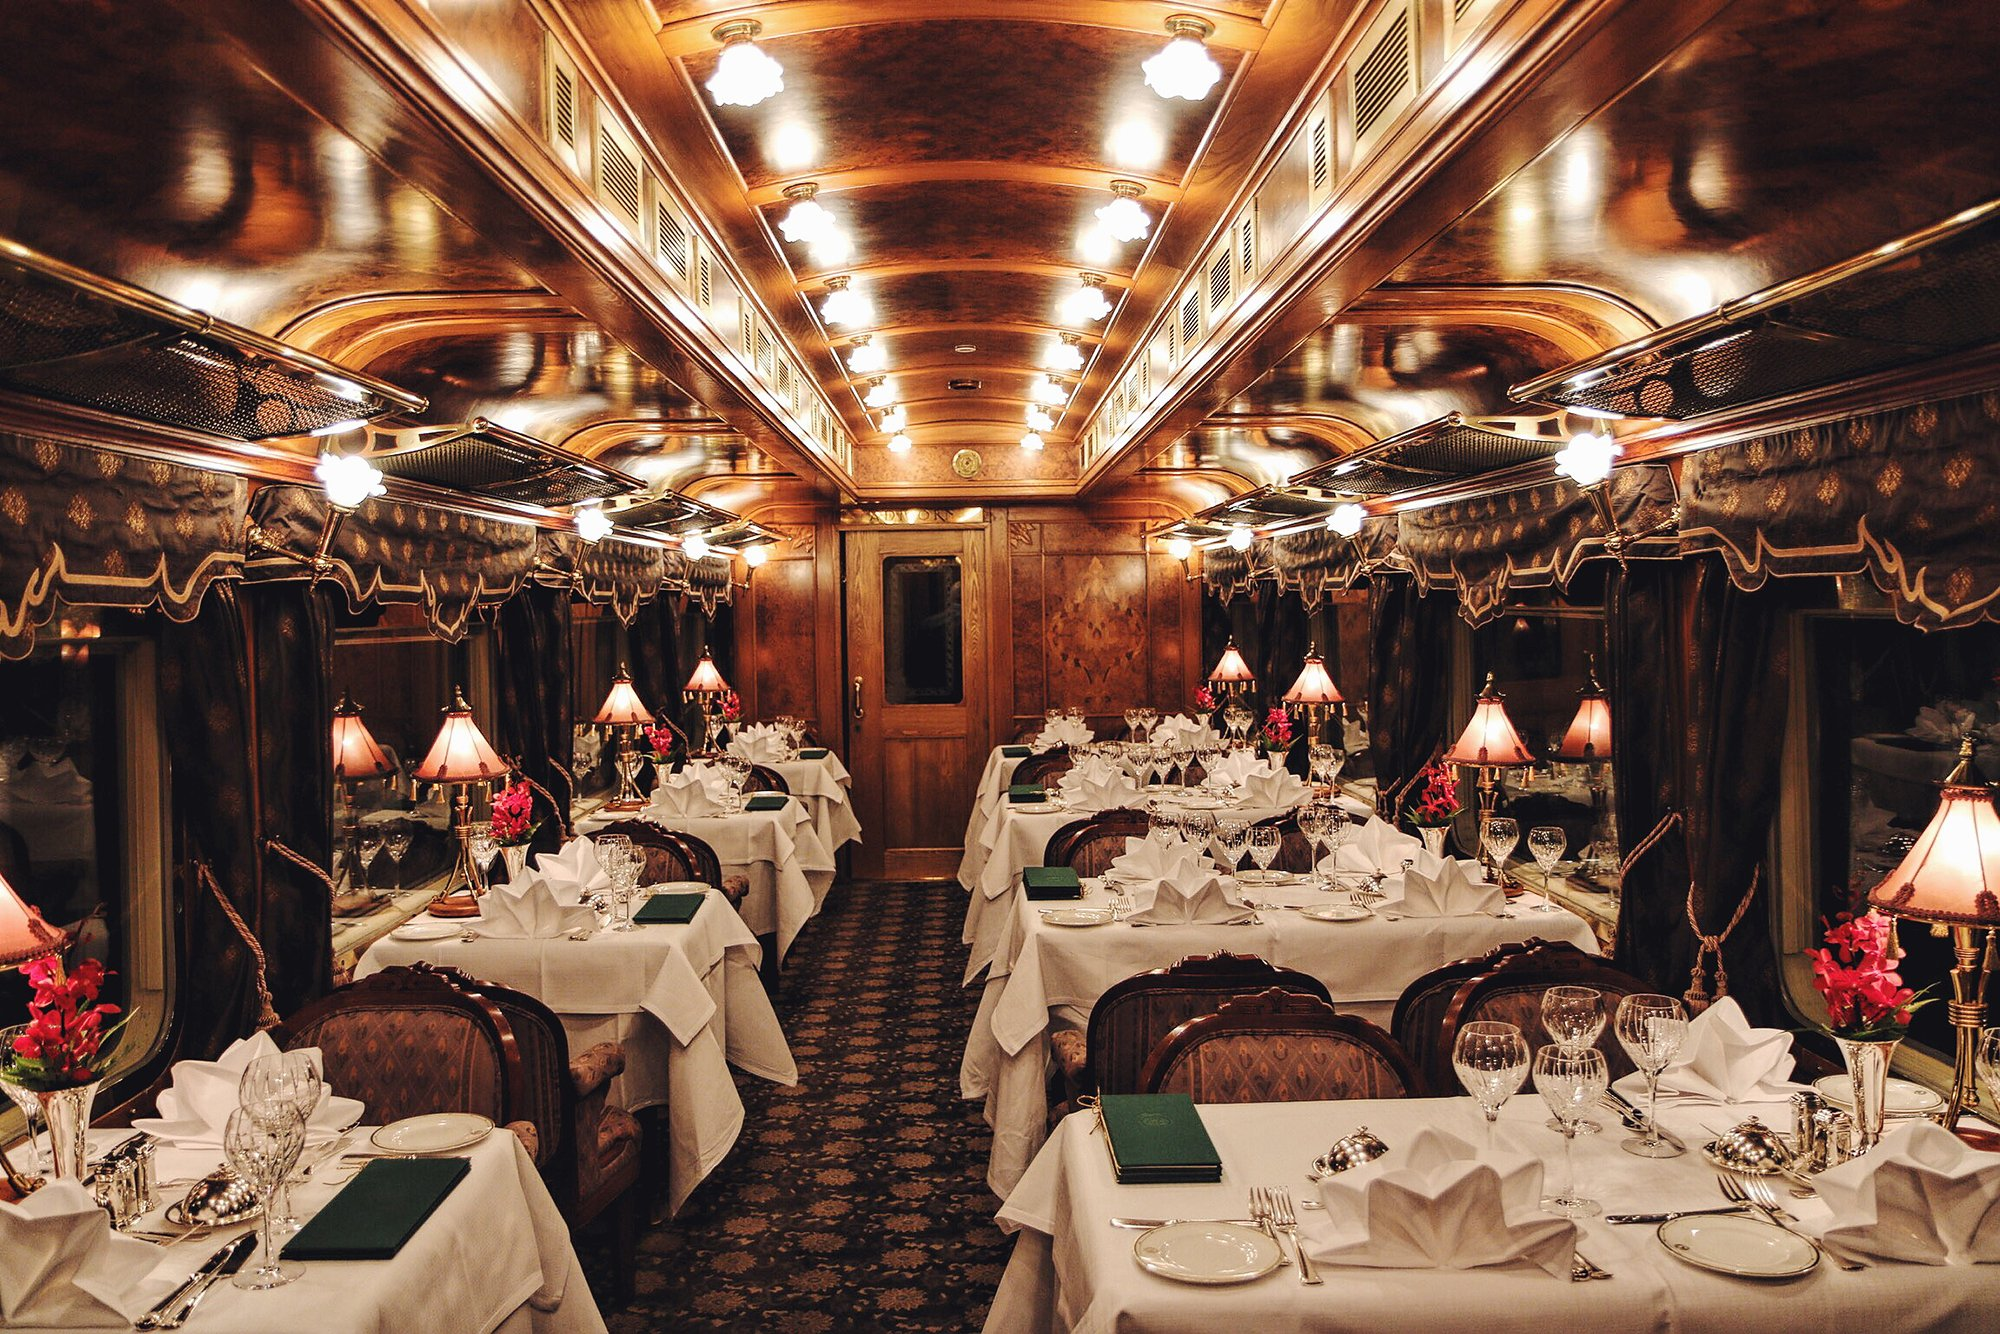 Dinner On The Orient Express - Supper Club  Bookitbee-6200